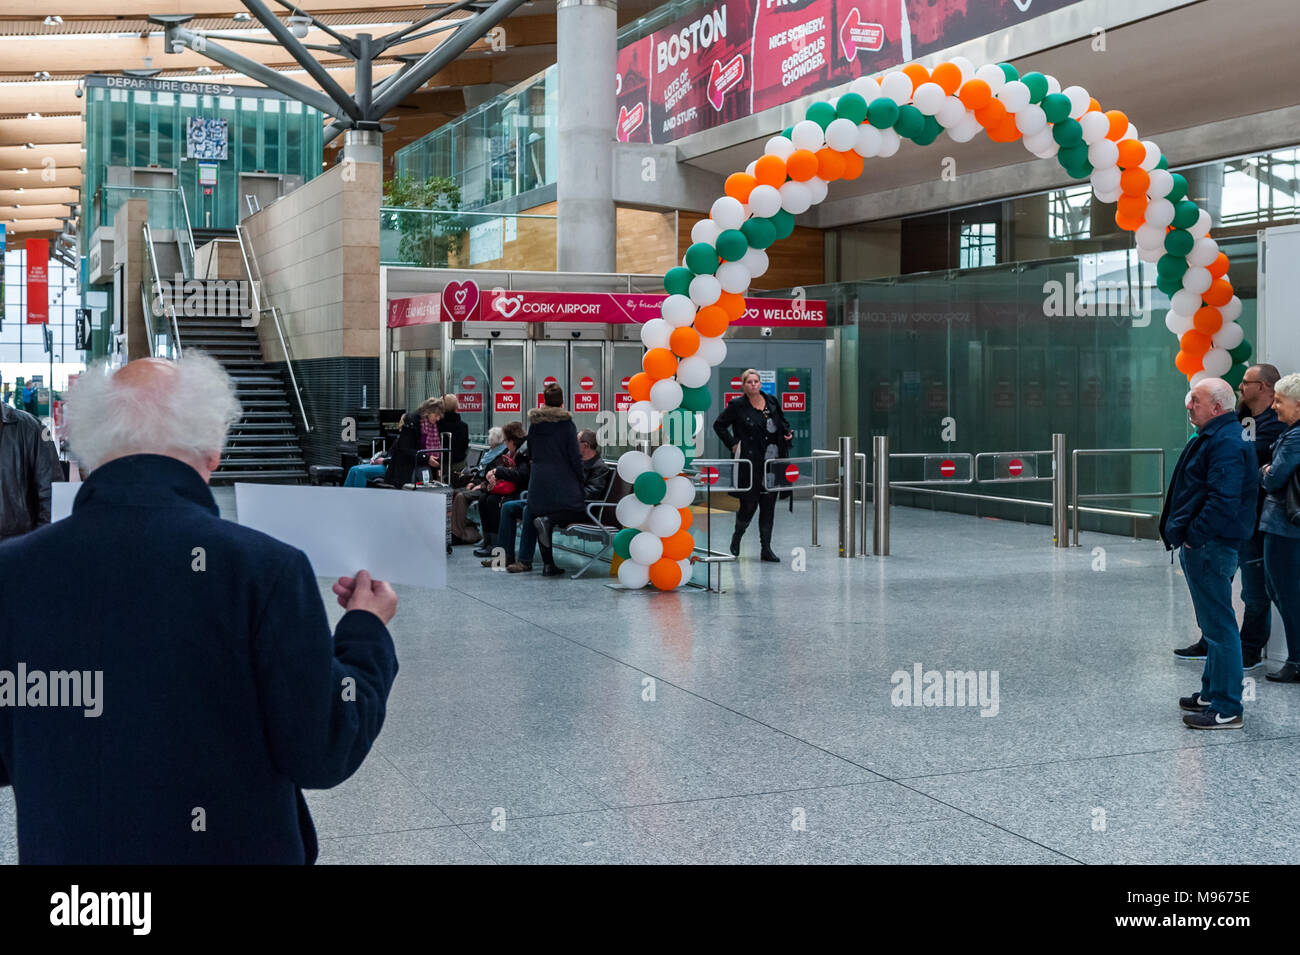 Arrivals Gate decorated for St. Patrick's Day at Cork Airport (ORK), Cork, Ireland. - Stock Image